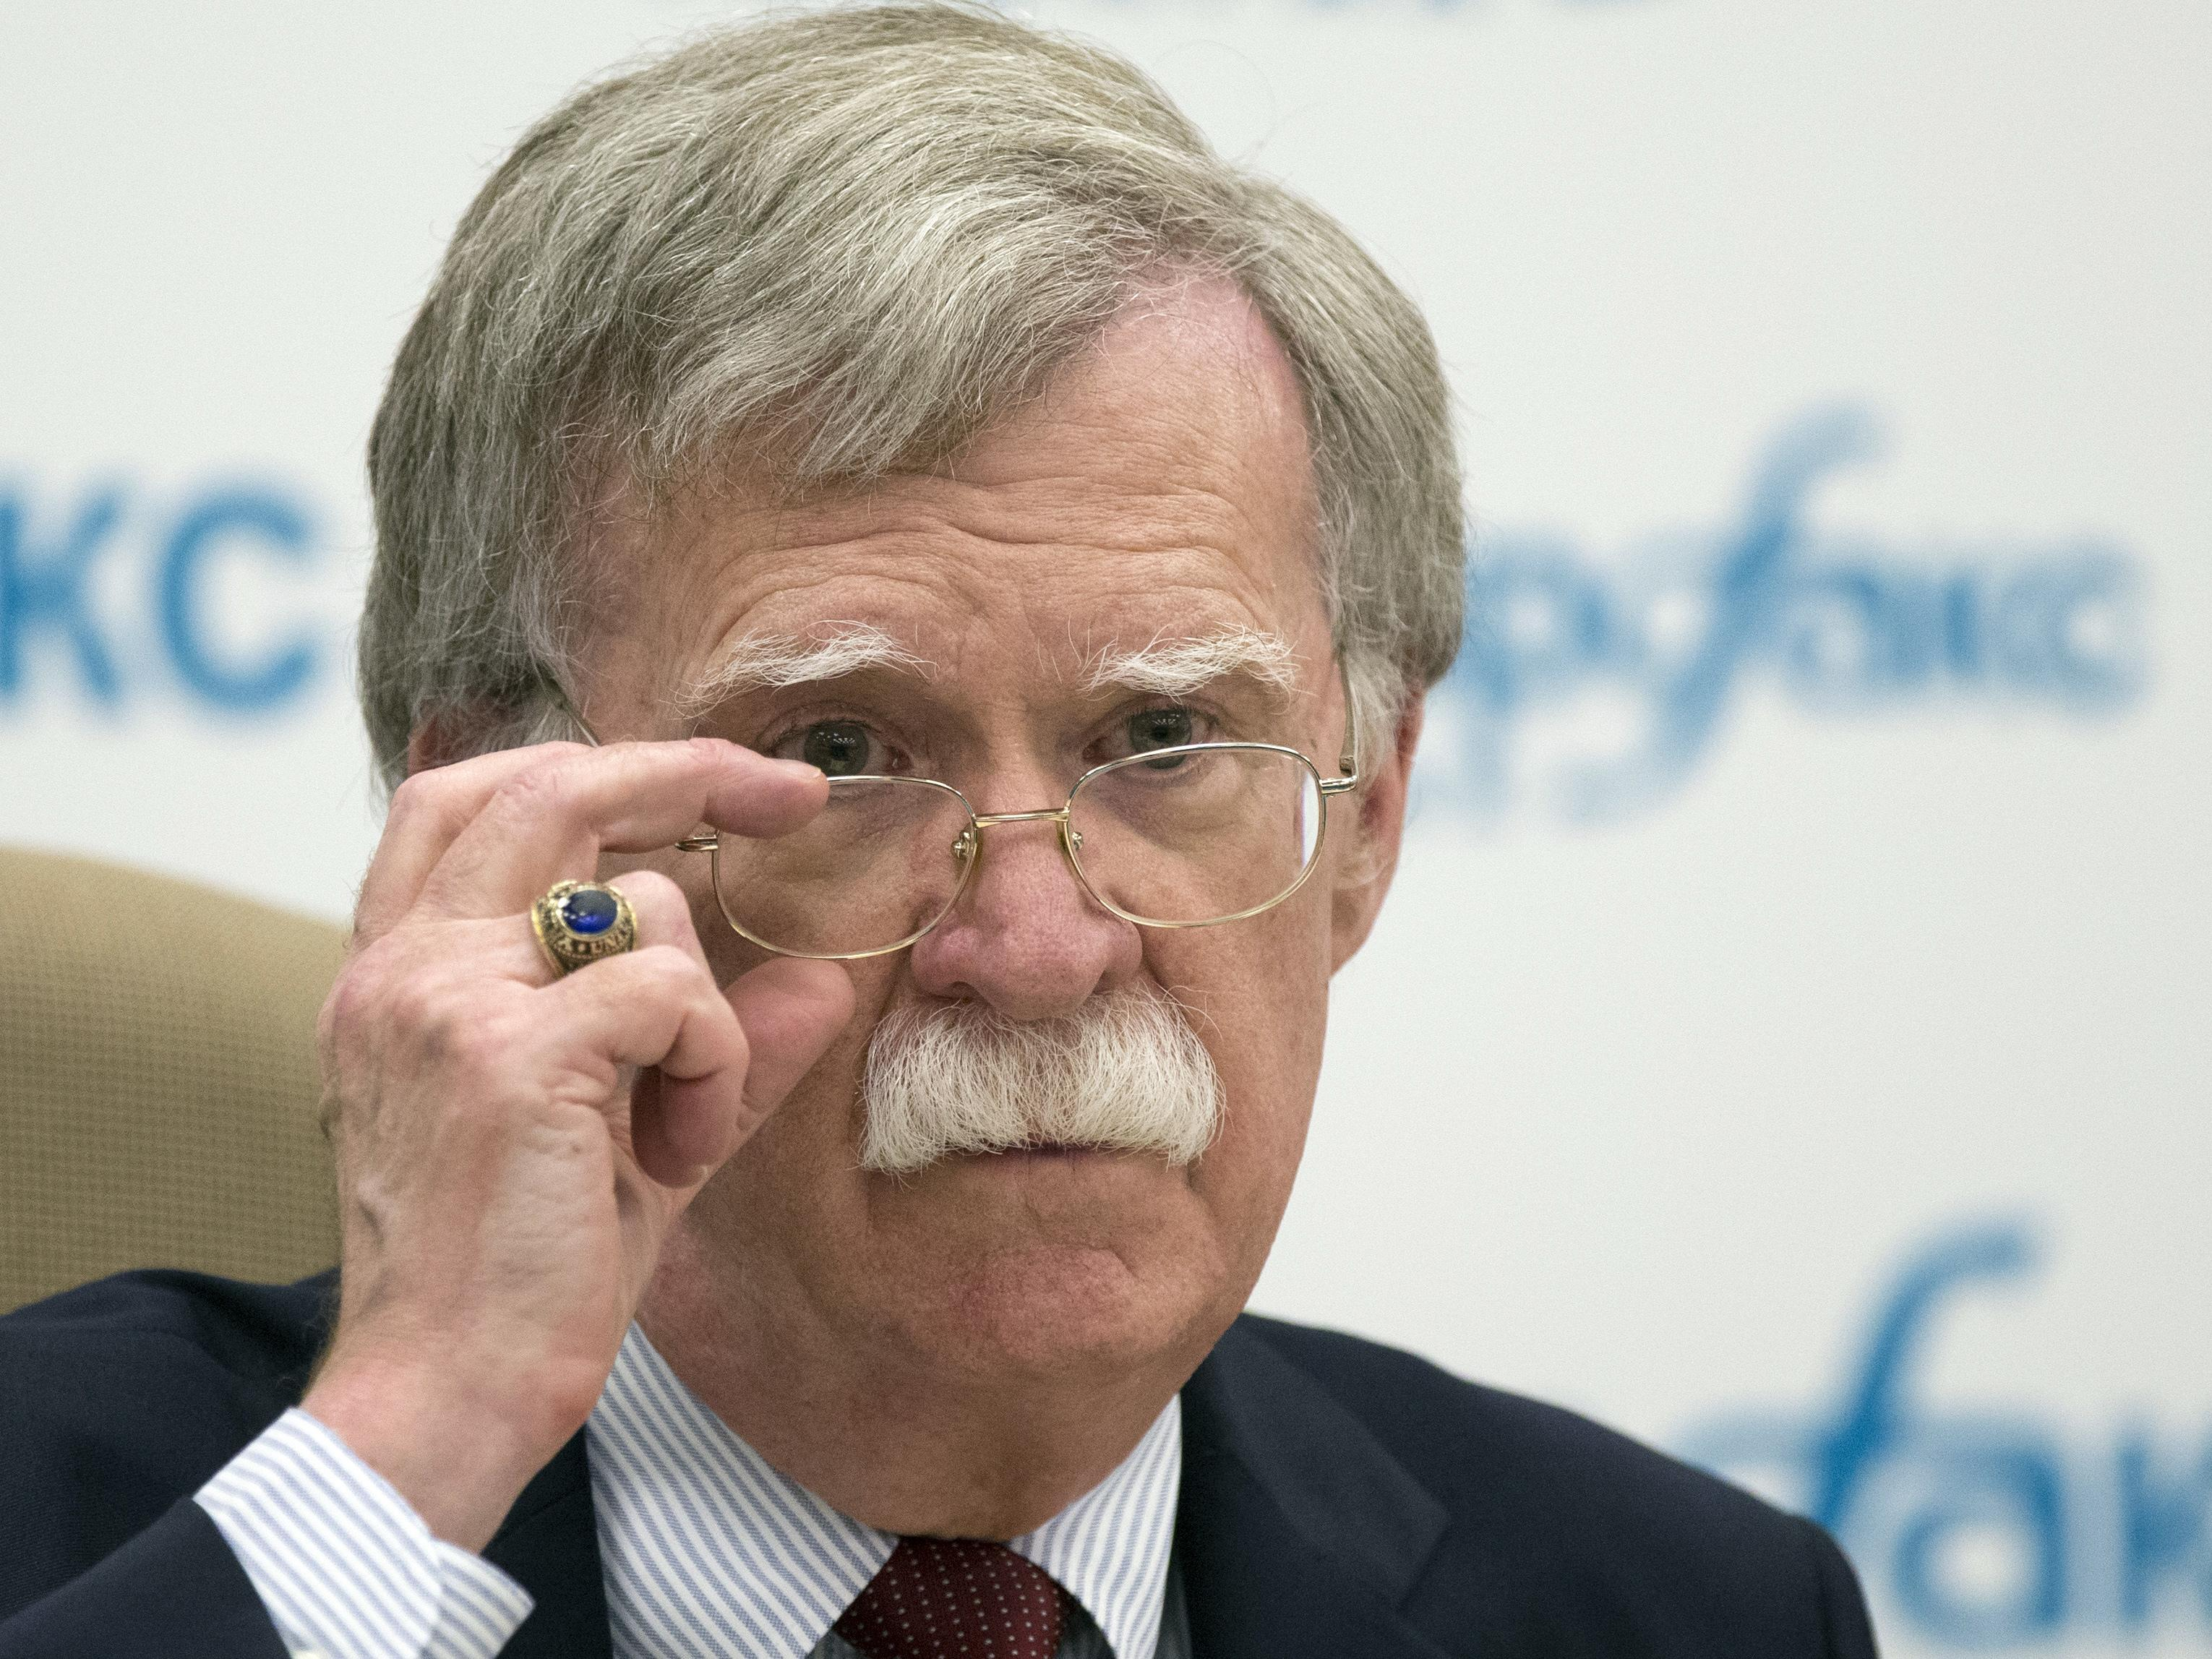 Trump on John Bolton: 'If it was up to him, he'd take on the whole world at one time'